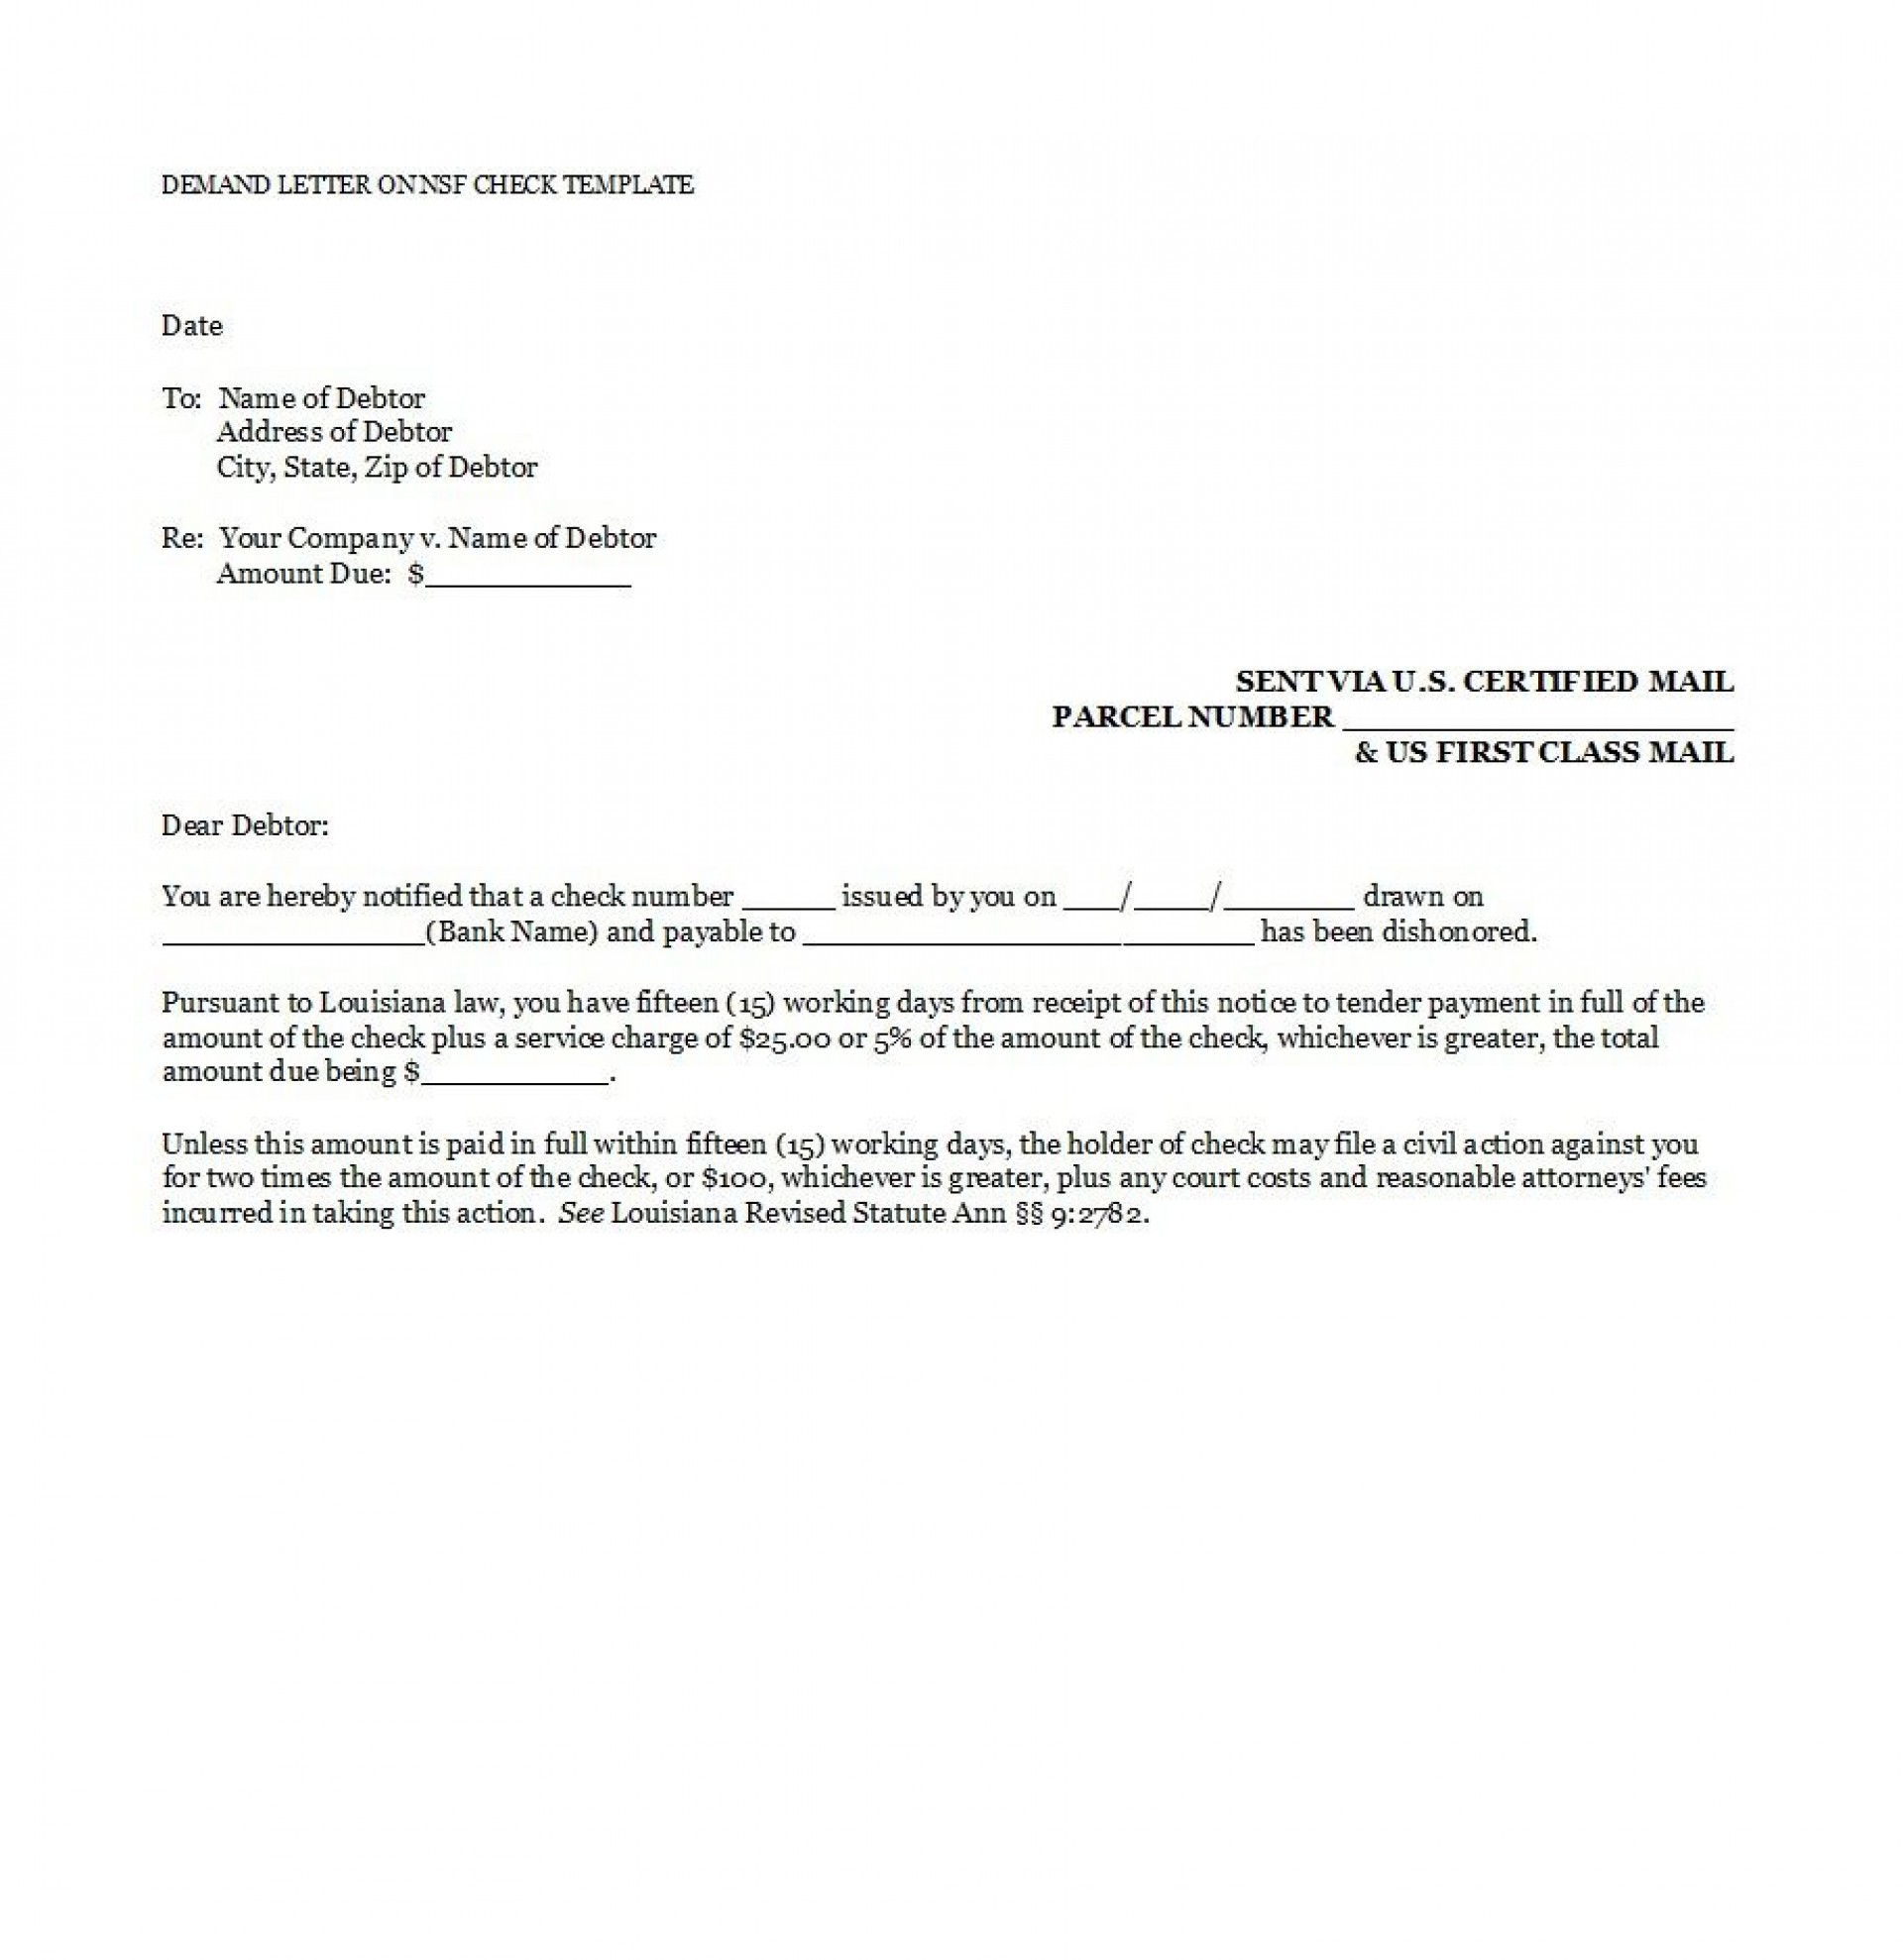 005 Shocking Payment Demand Letter Template Free High Resolution  Final For1920